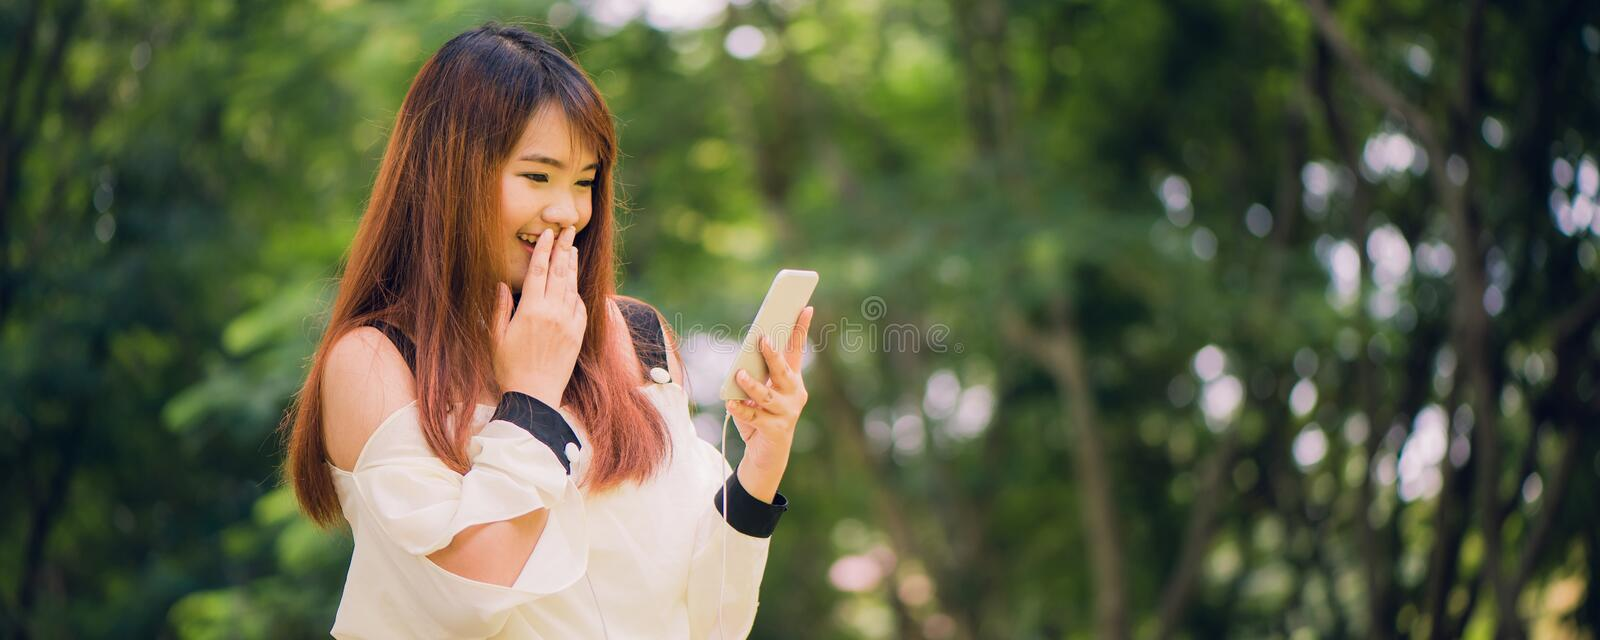 Cute asian woman is reading pleasant text message on mobile phone while sitting in park stock photo